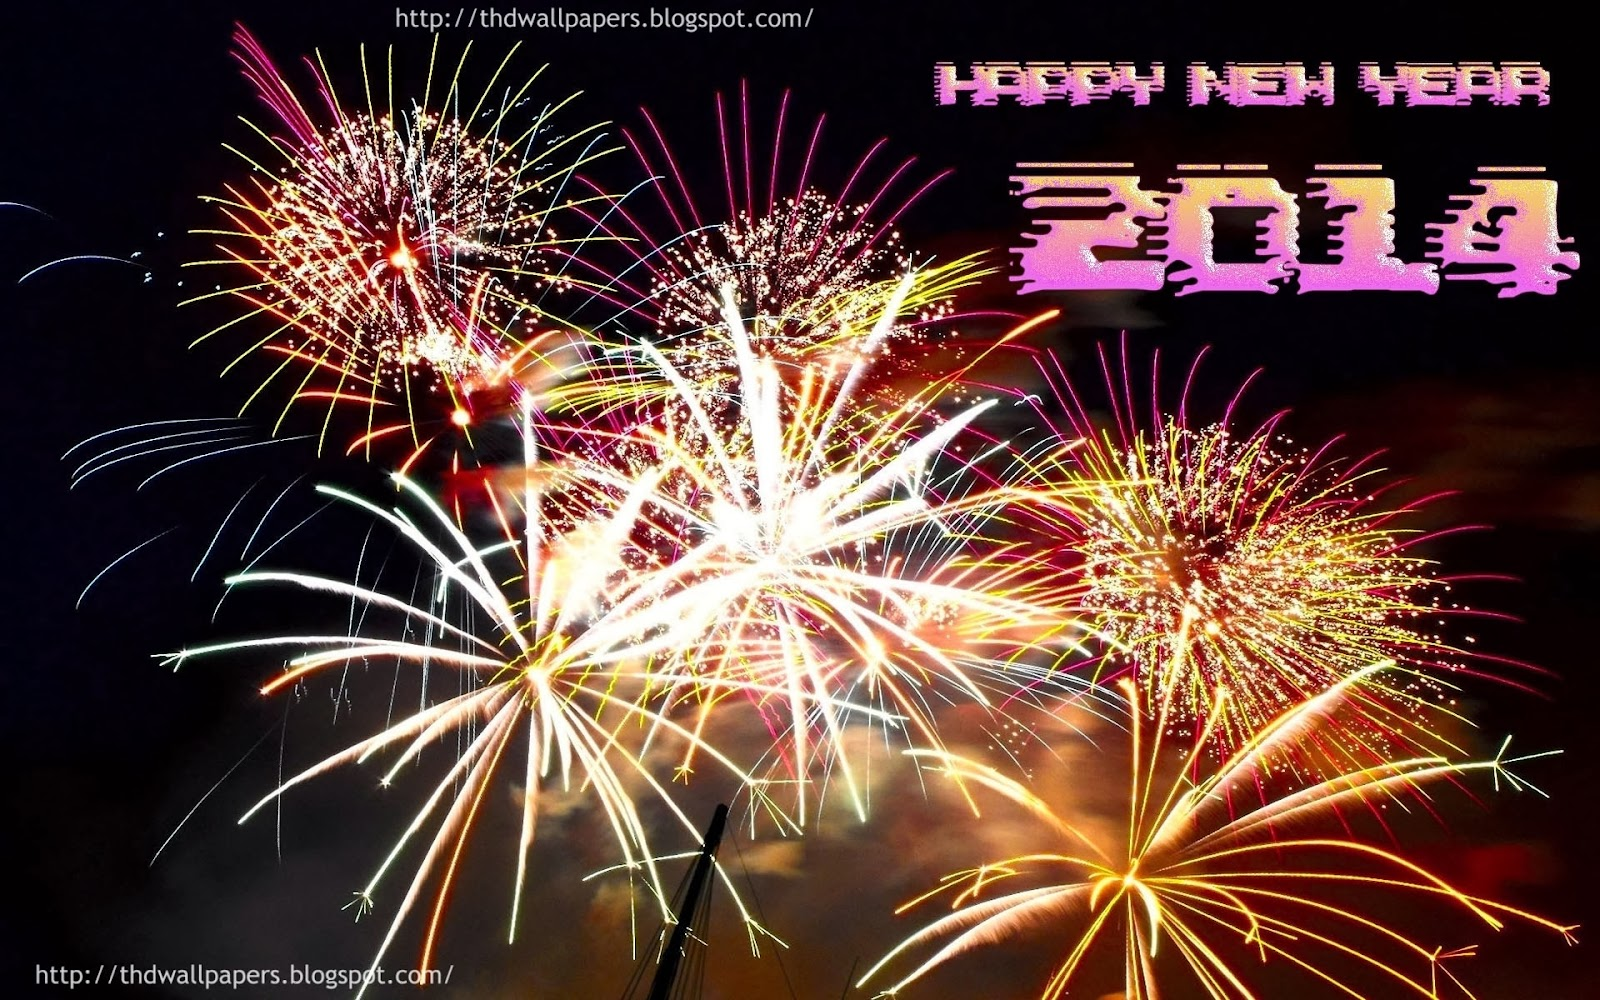 Happy New Year 2014 Eve Wallpapers New Year Fireworks Pictures.10 Happy New Year Profile Pics 2014